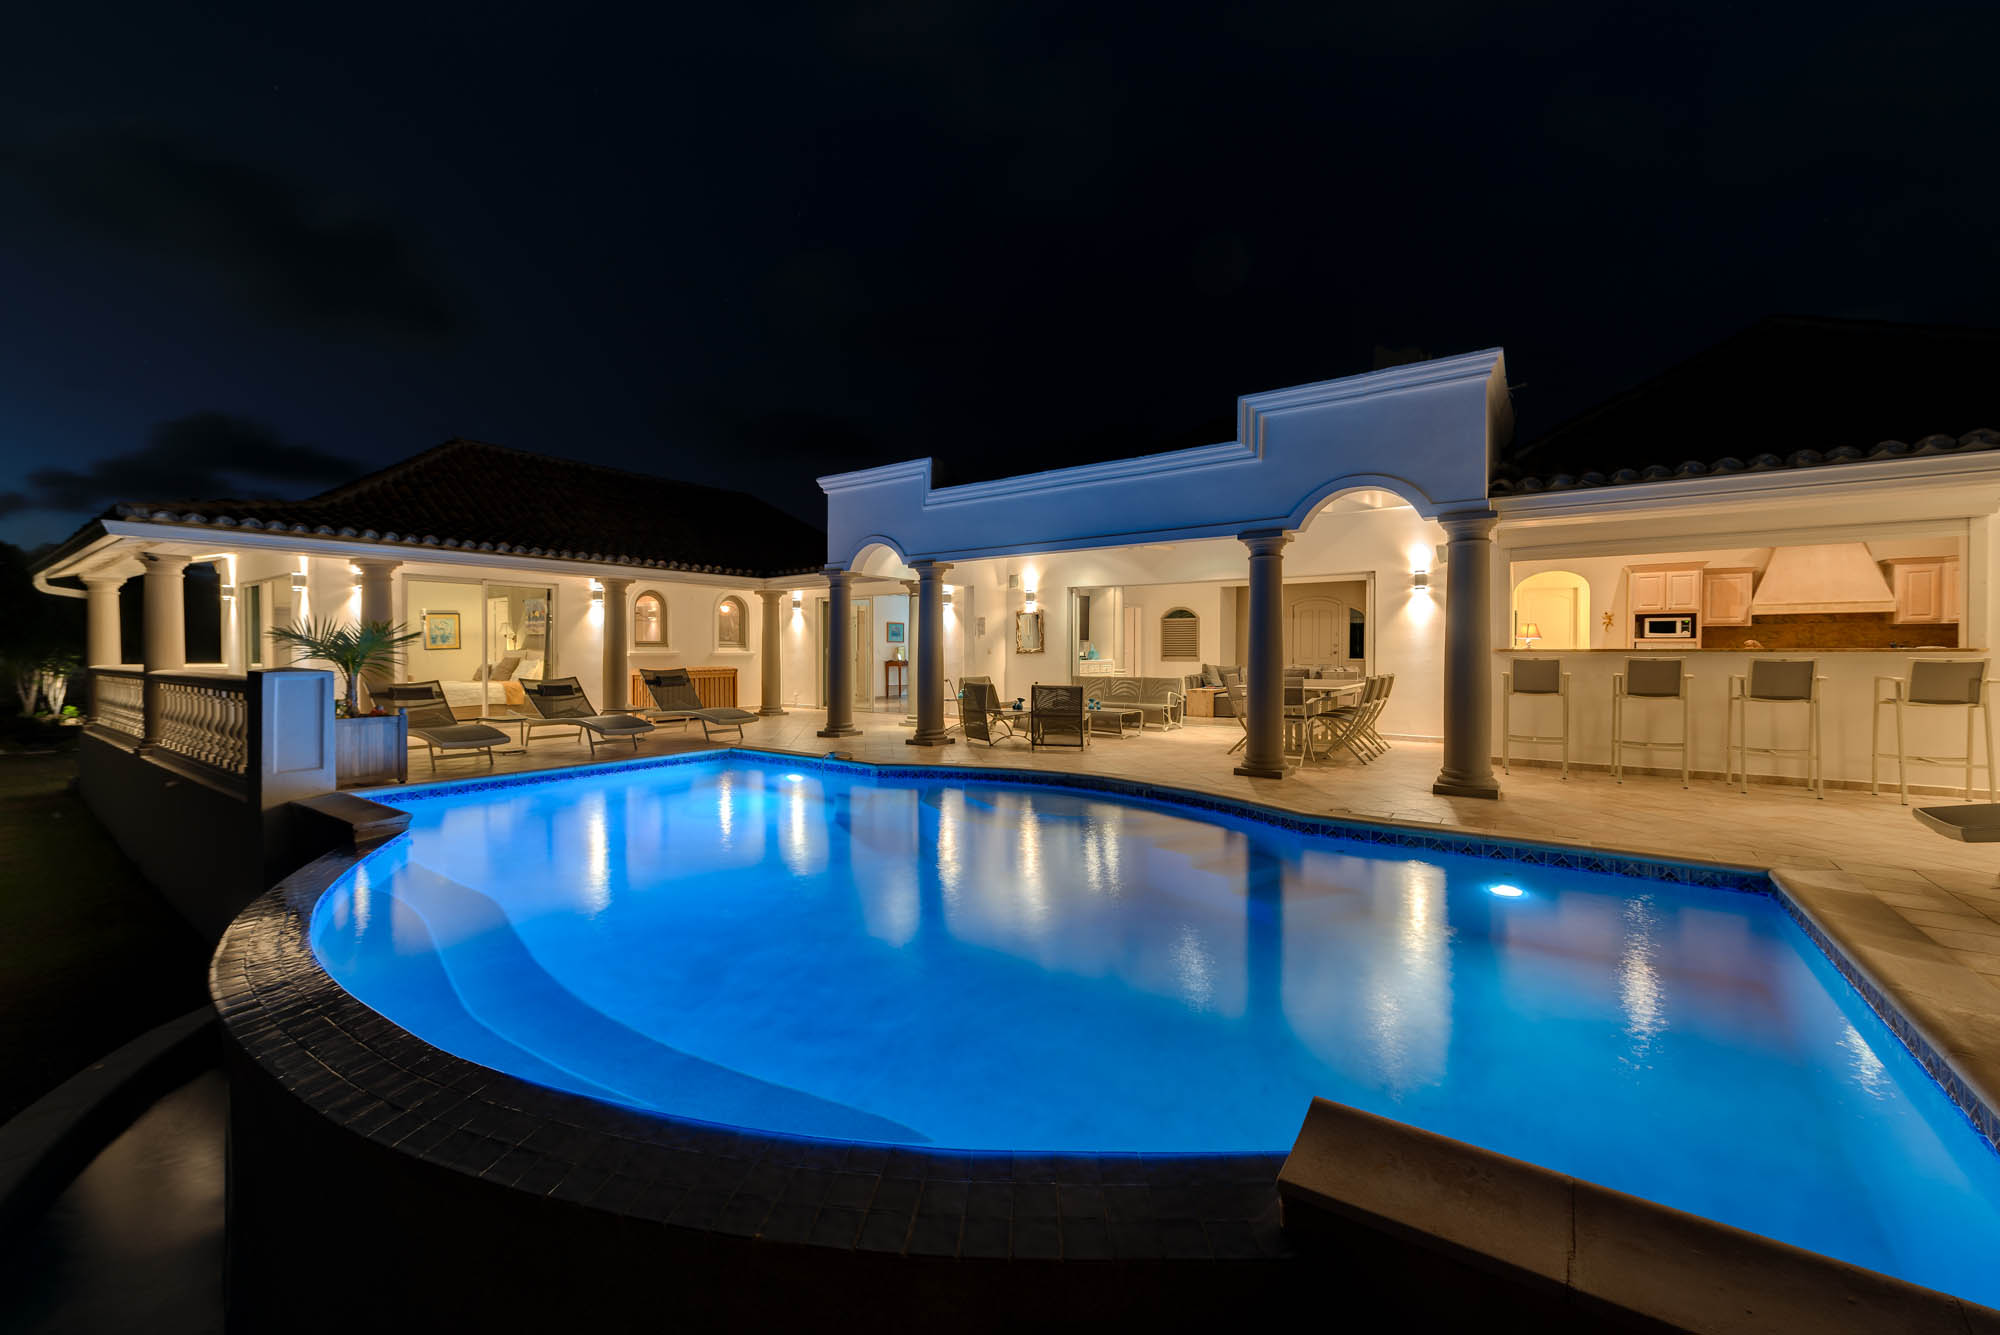 La Bastide, Baie Longue, Terres Basses, St. Martin villa rental is stunning by day or night by night.